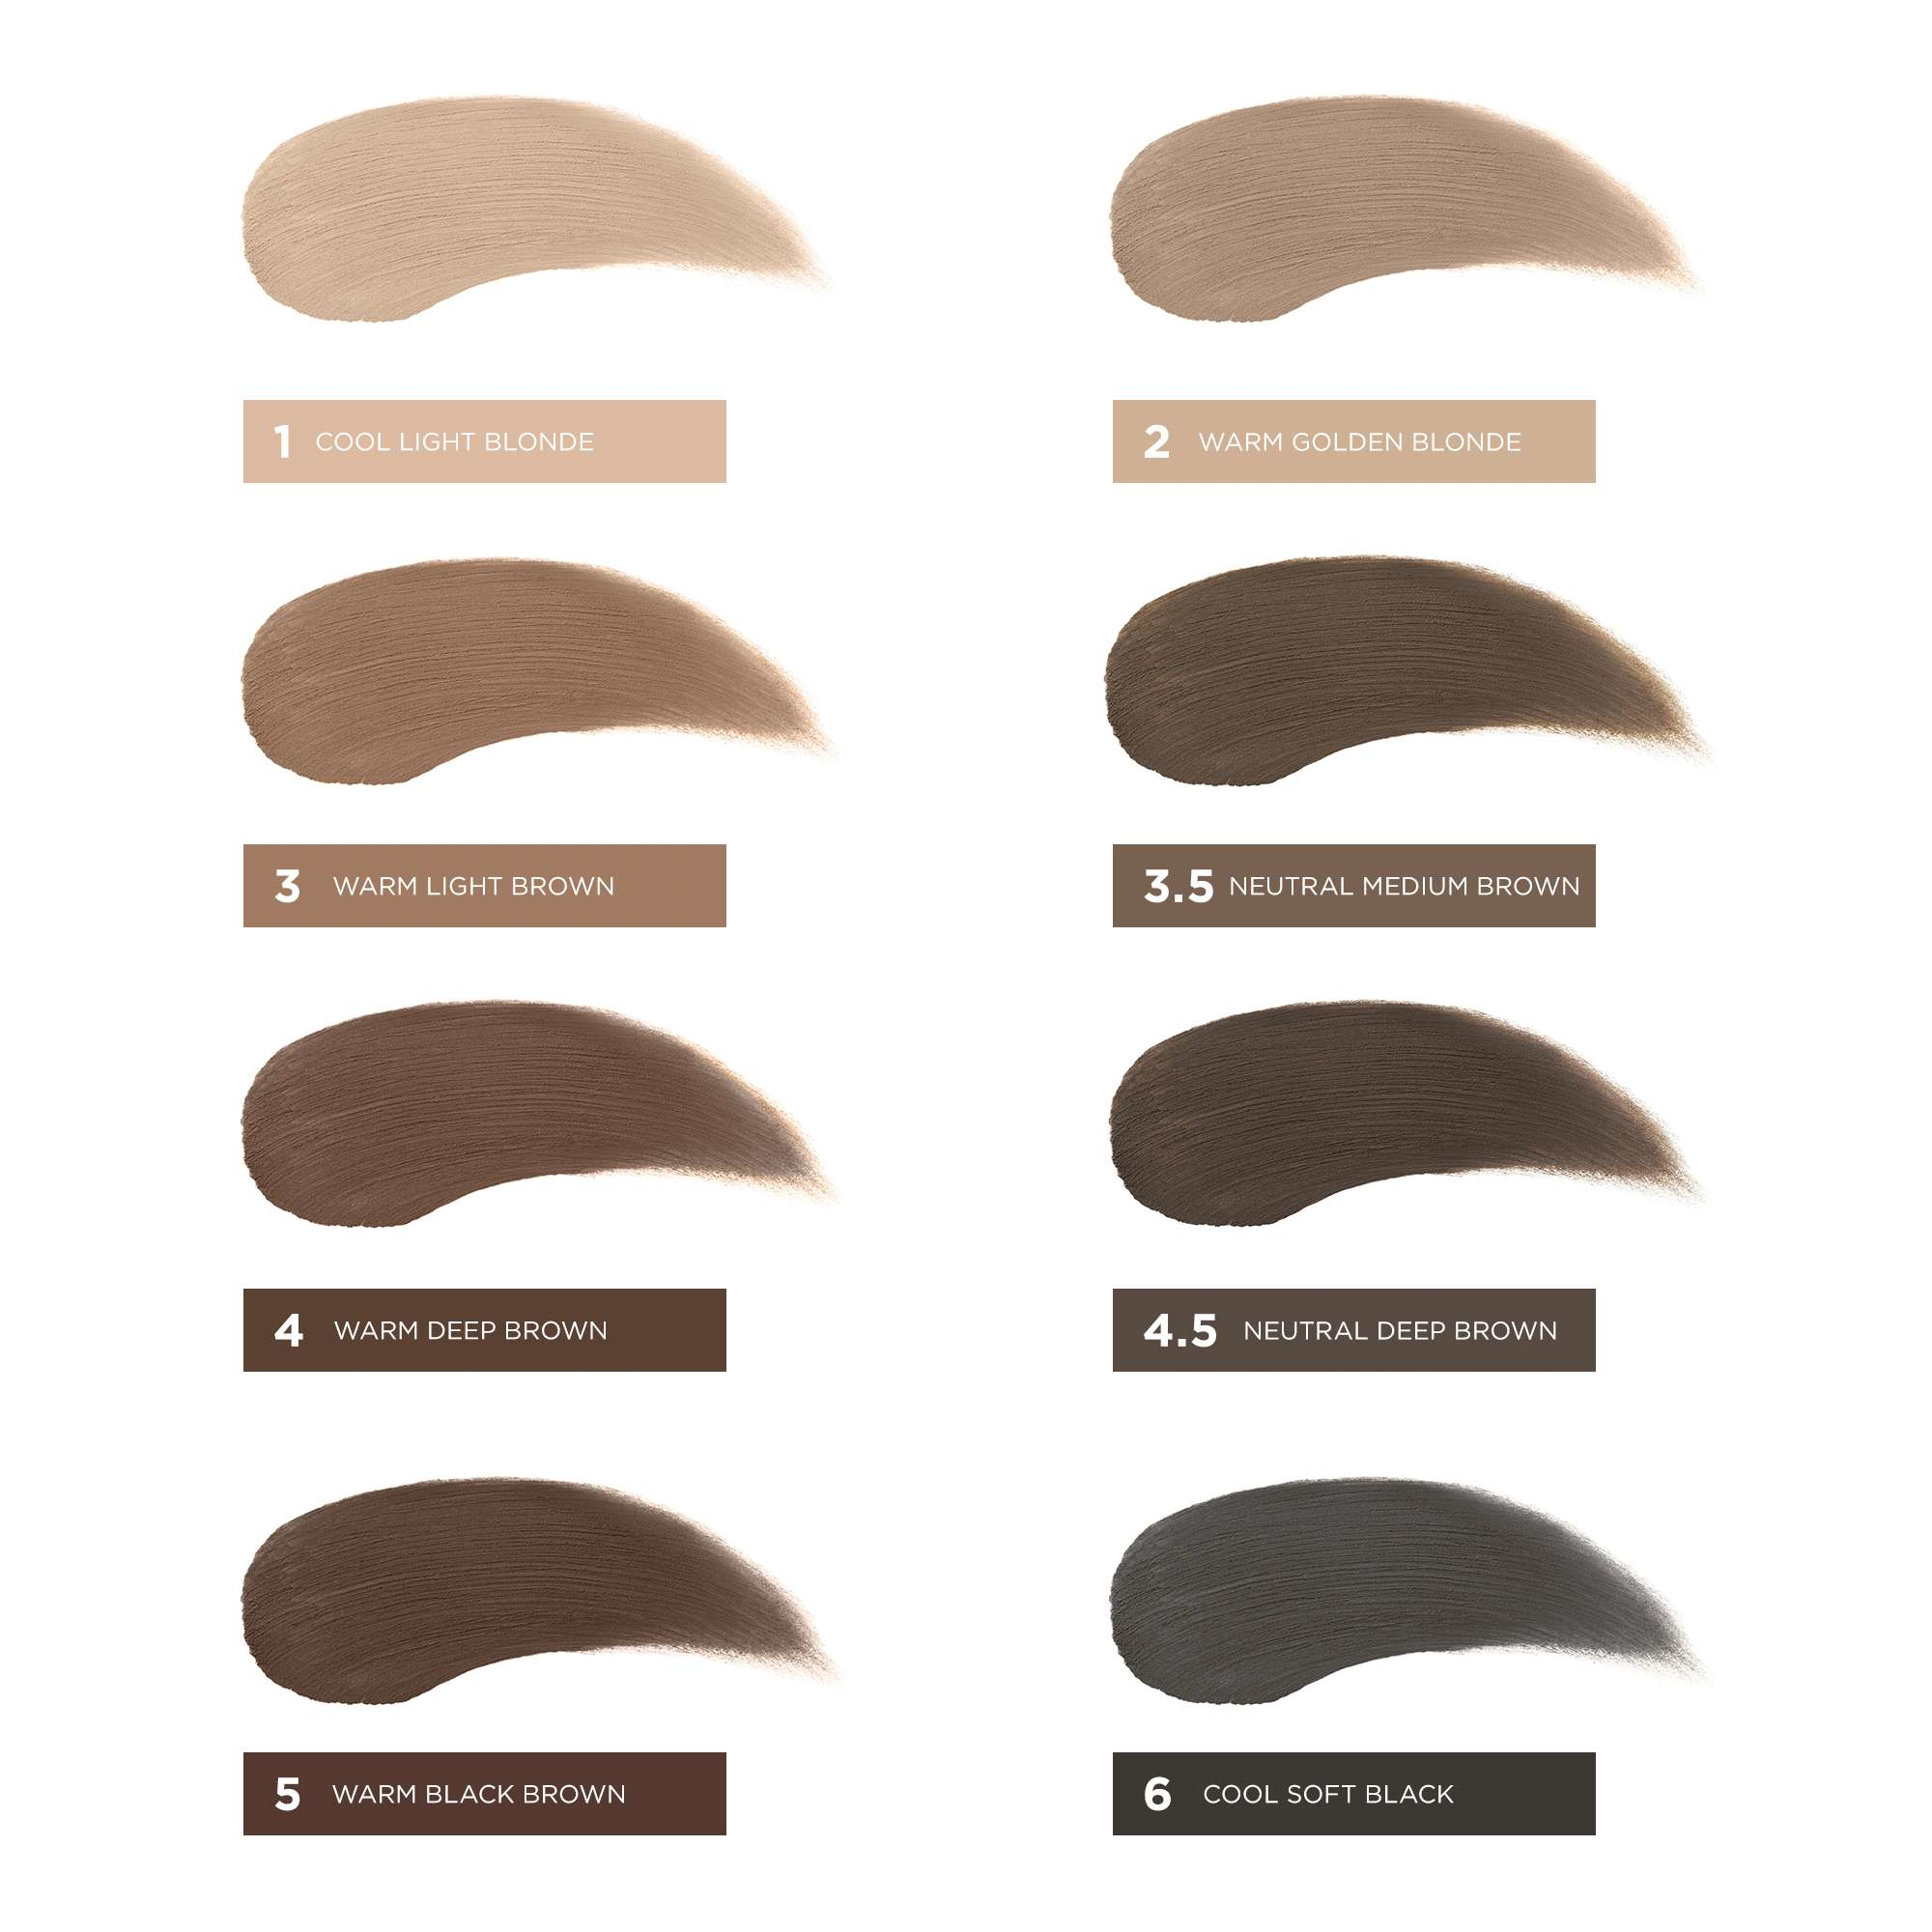 KA-BROW! CREAM-GEL EYEBROW COLOR